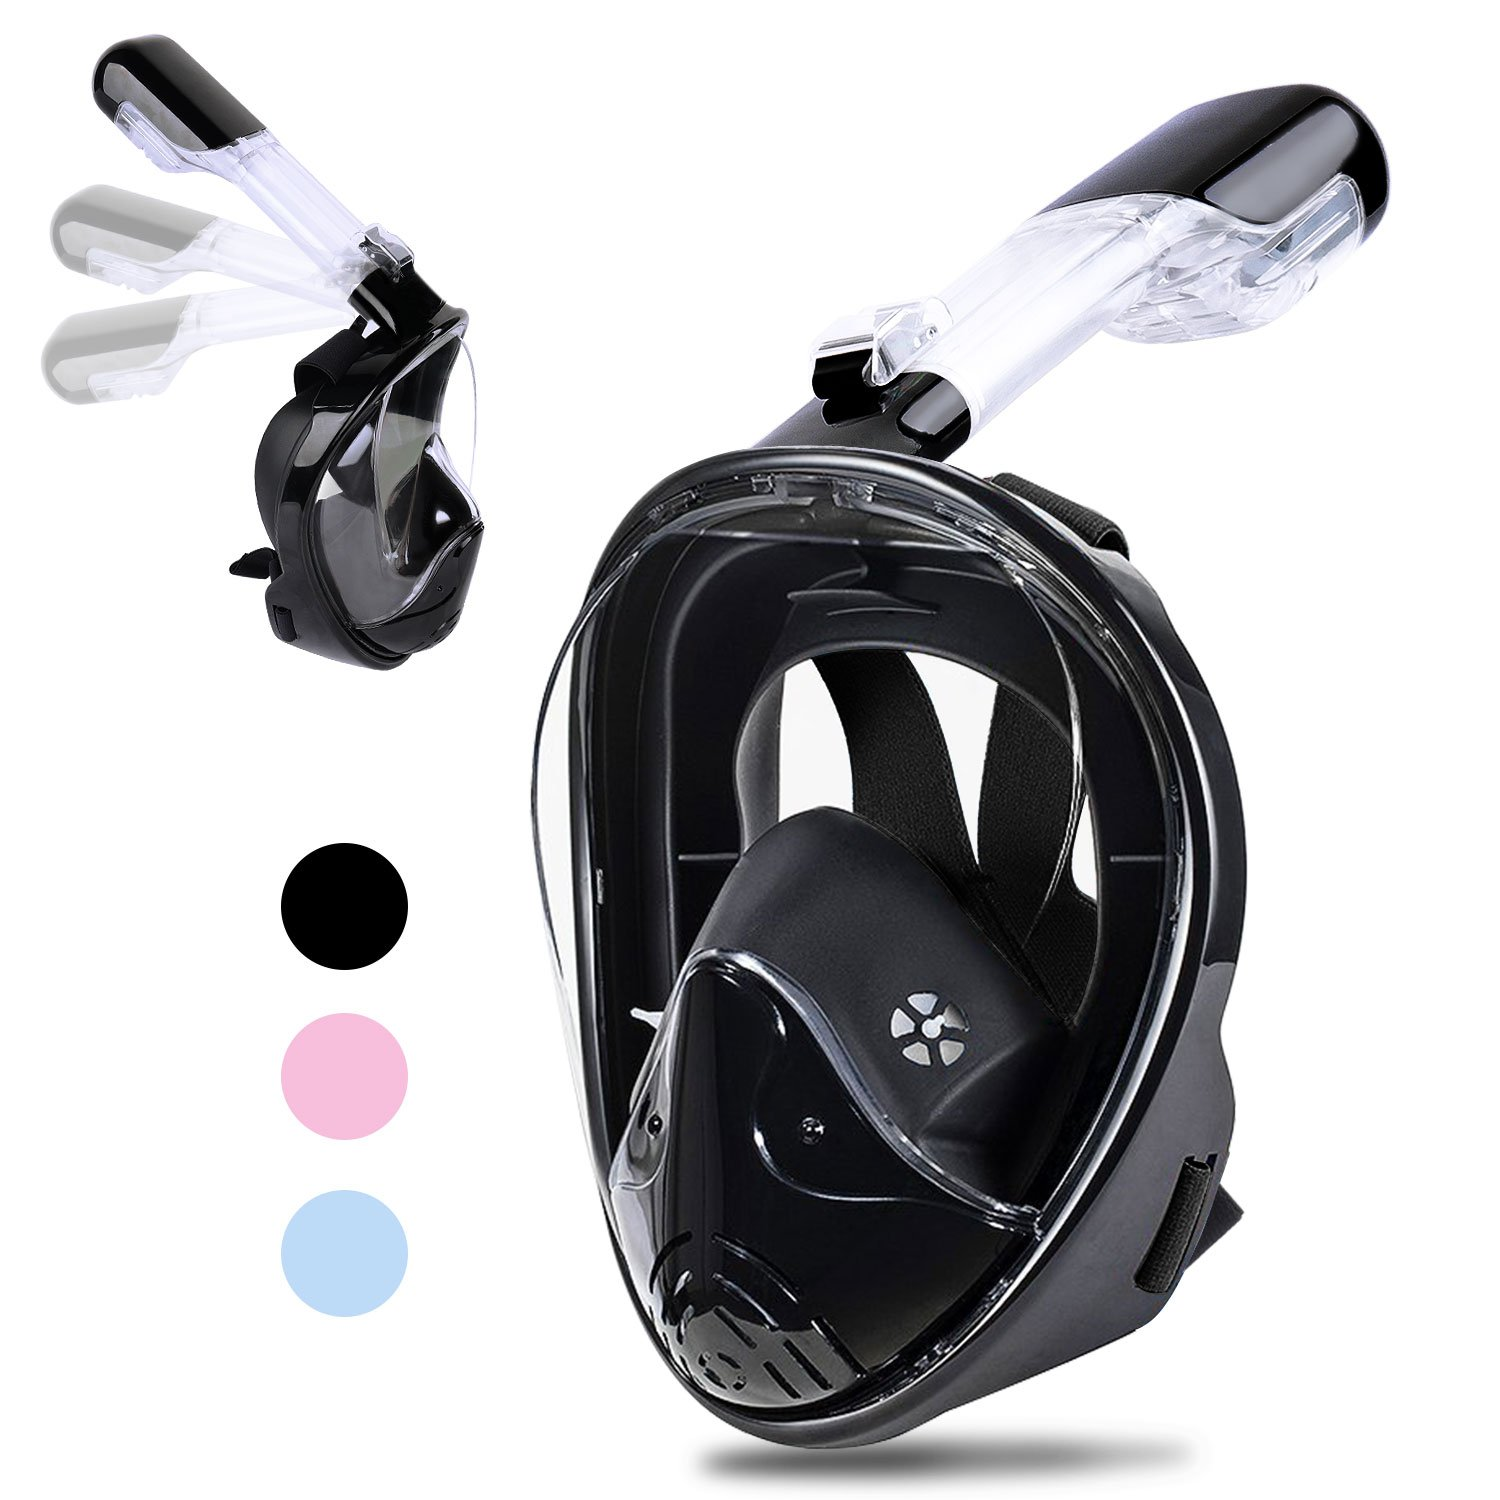 Greatever [Newest Version Snorkel Mask Foldable 180 Panoramic View Free Breathing Full Face Snorkeling Mask with Detachable GoPro Mount, Dry Top Set Anti-Fog Anti-Leak for Adults & Kids